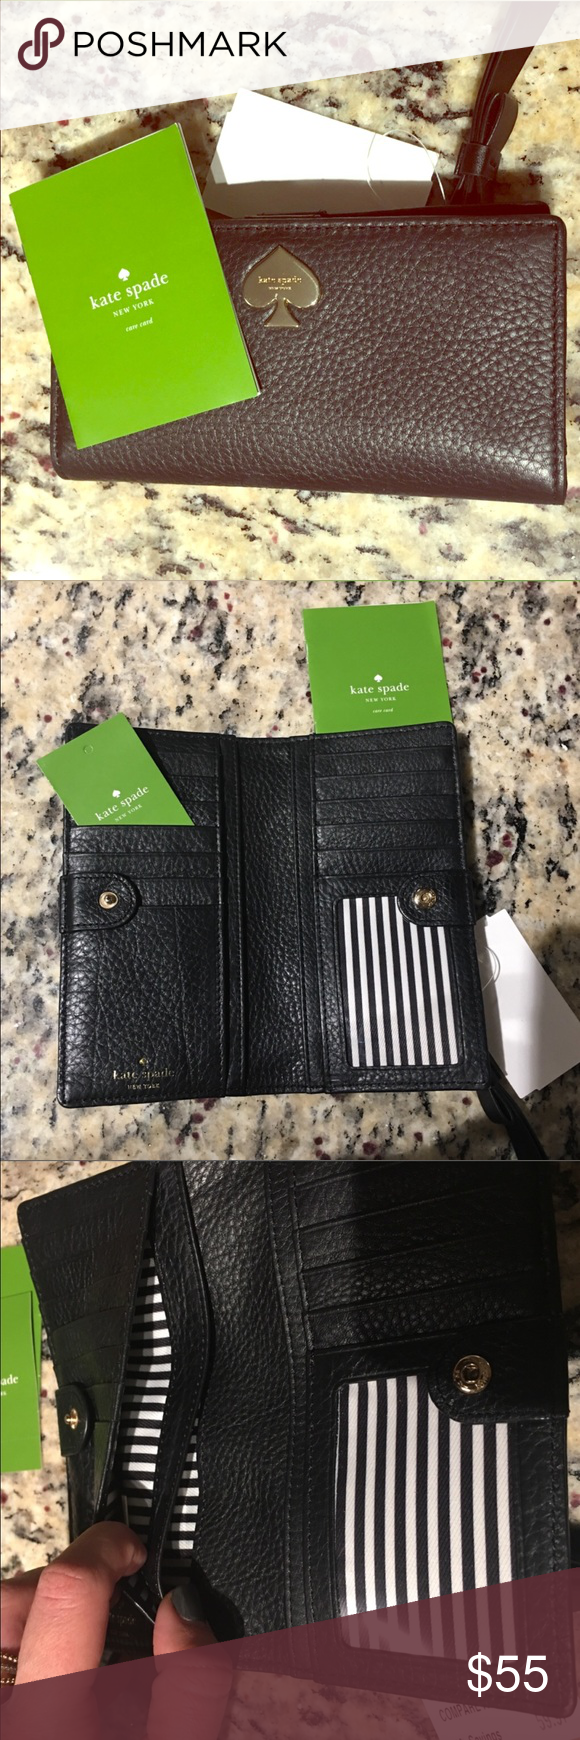 Kate Spade Black Leather Wallet Brand new Kate Spade wallet. No flaws, perfect condition. Has multiple slots for cash/receipts, and two sides of card slots. Adorable black and white striped design! Also has a zippered pouch with signature bow to pull zipper closed! kate spade Bags Wallets